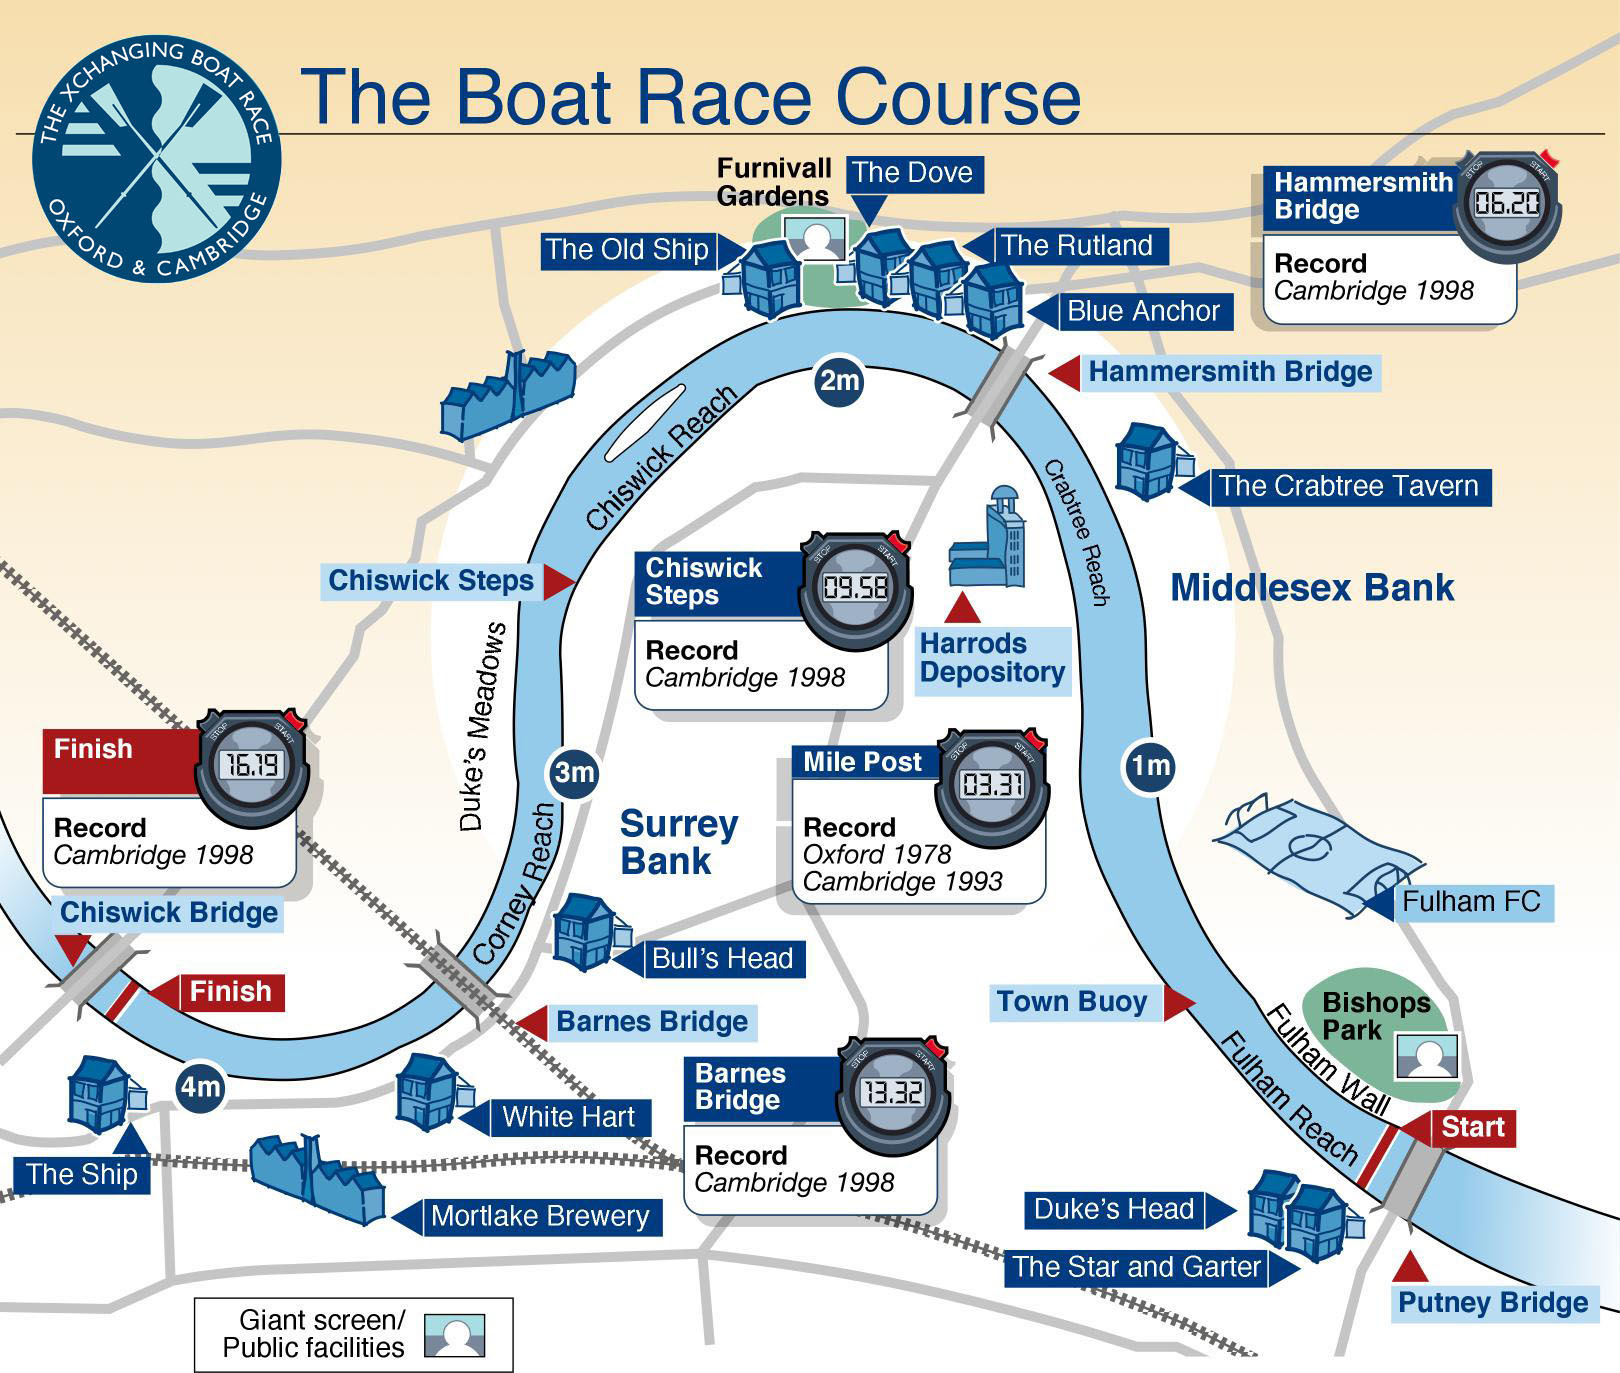 The Boat Races course